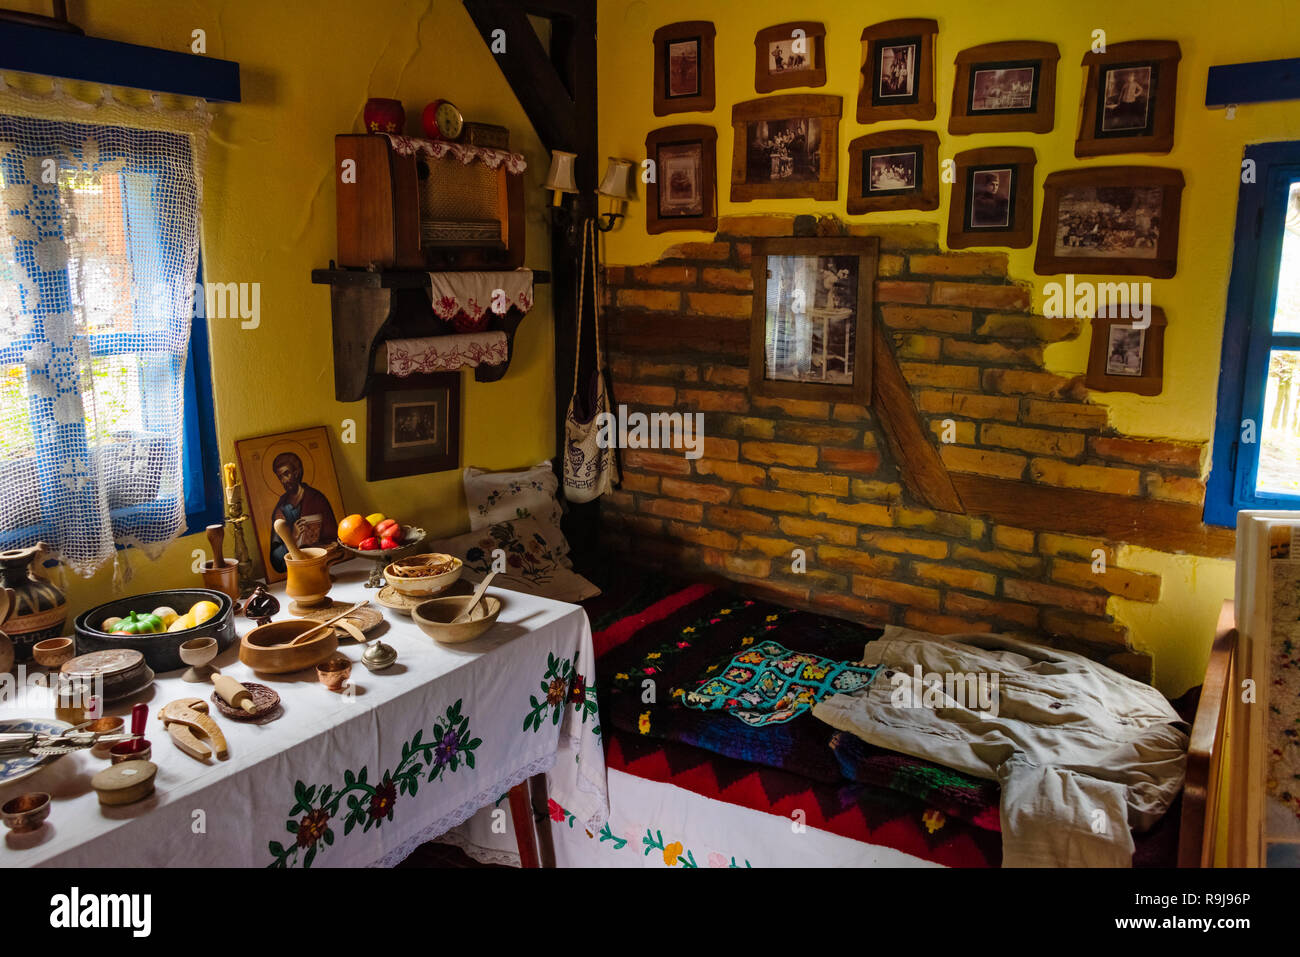 Inside a house, Terzica Avlija village, an open-air museum of ethno village, Zlakusa, Serbia - Stock Image